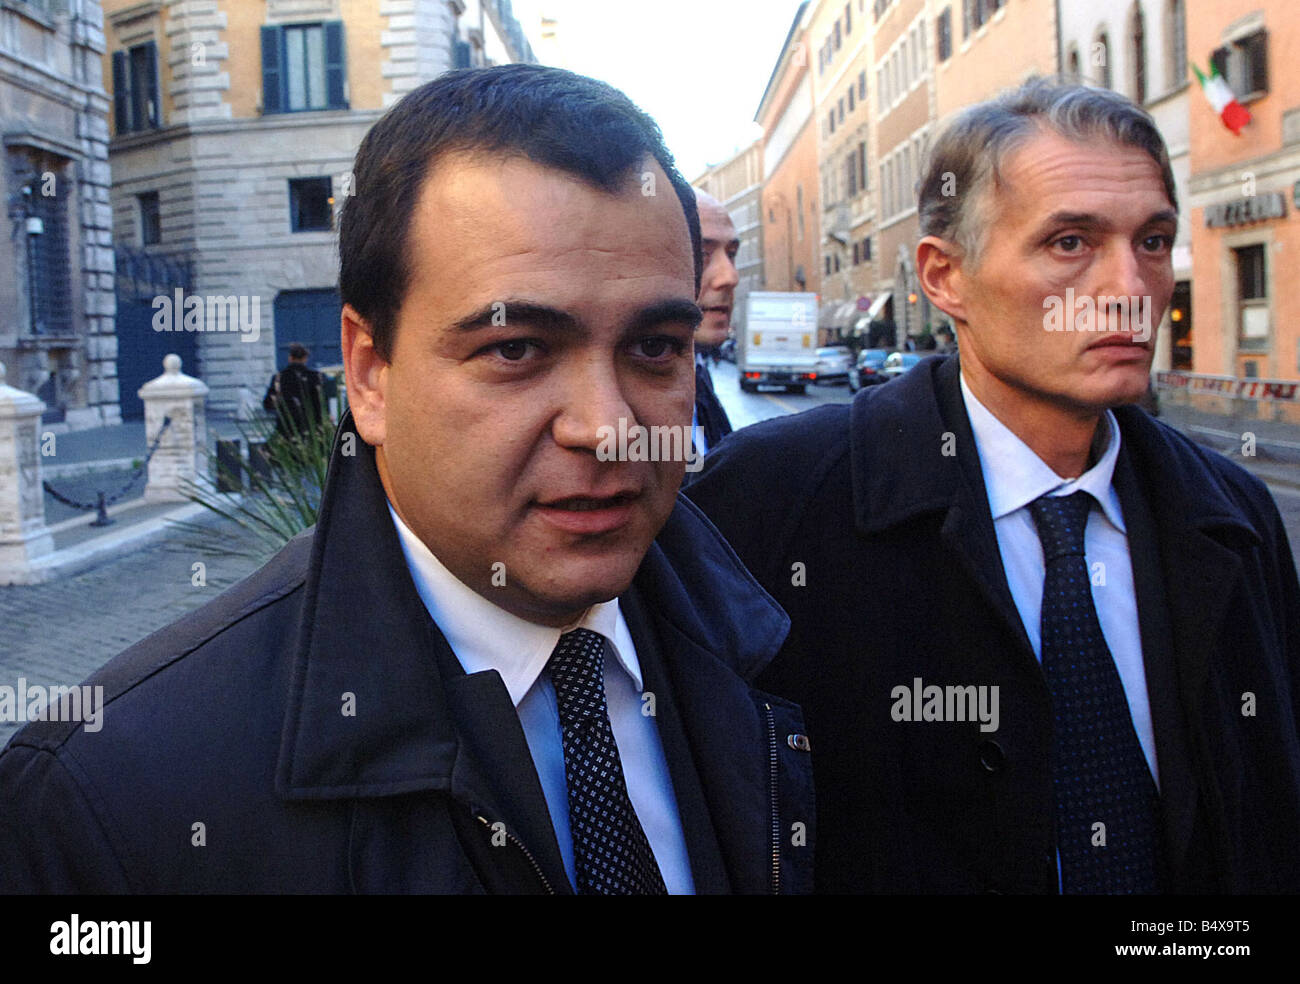 Alexander Litvinenko Murder November 2006 Italian professor Mario Scaramella the last person to dine with former - Stock Image